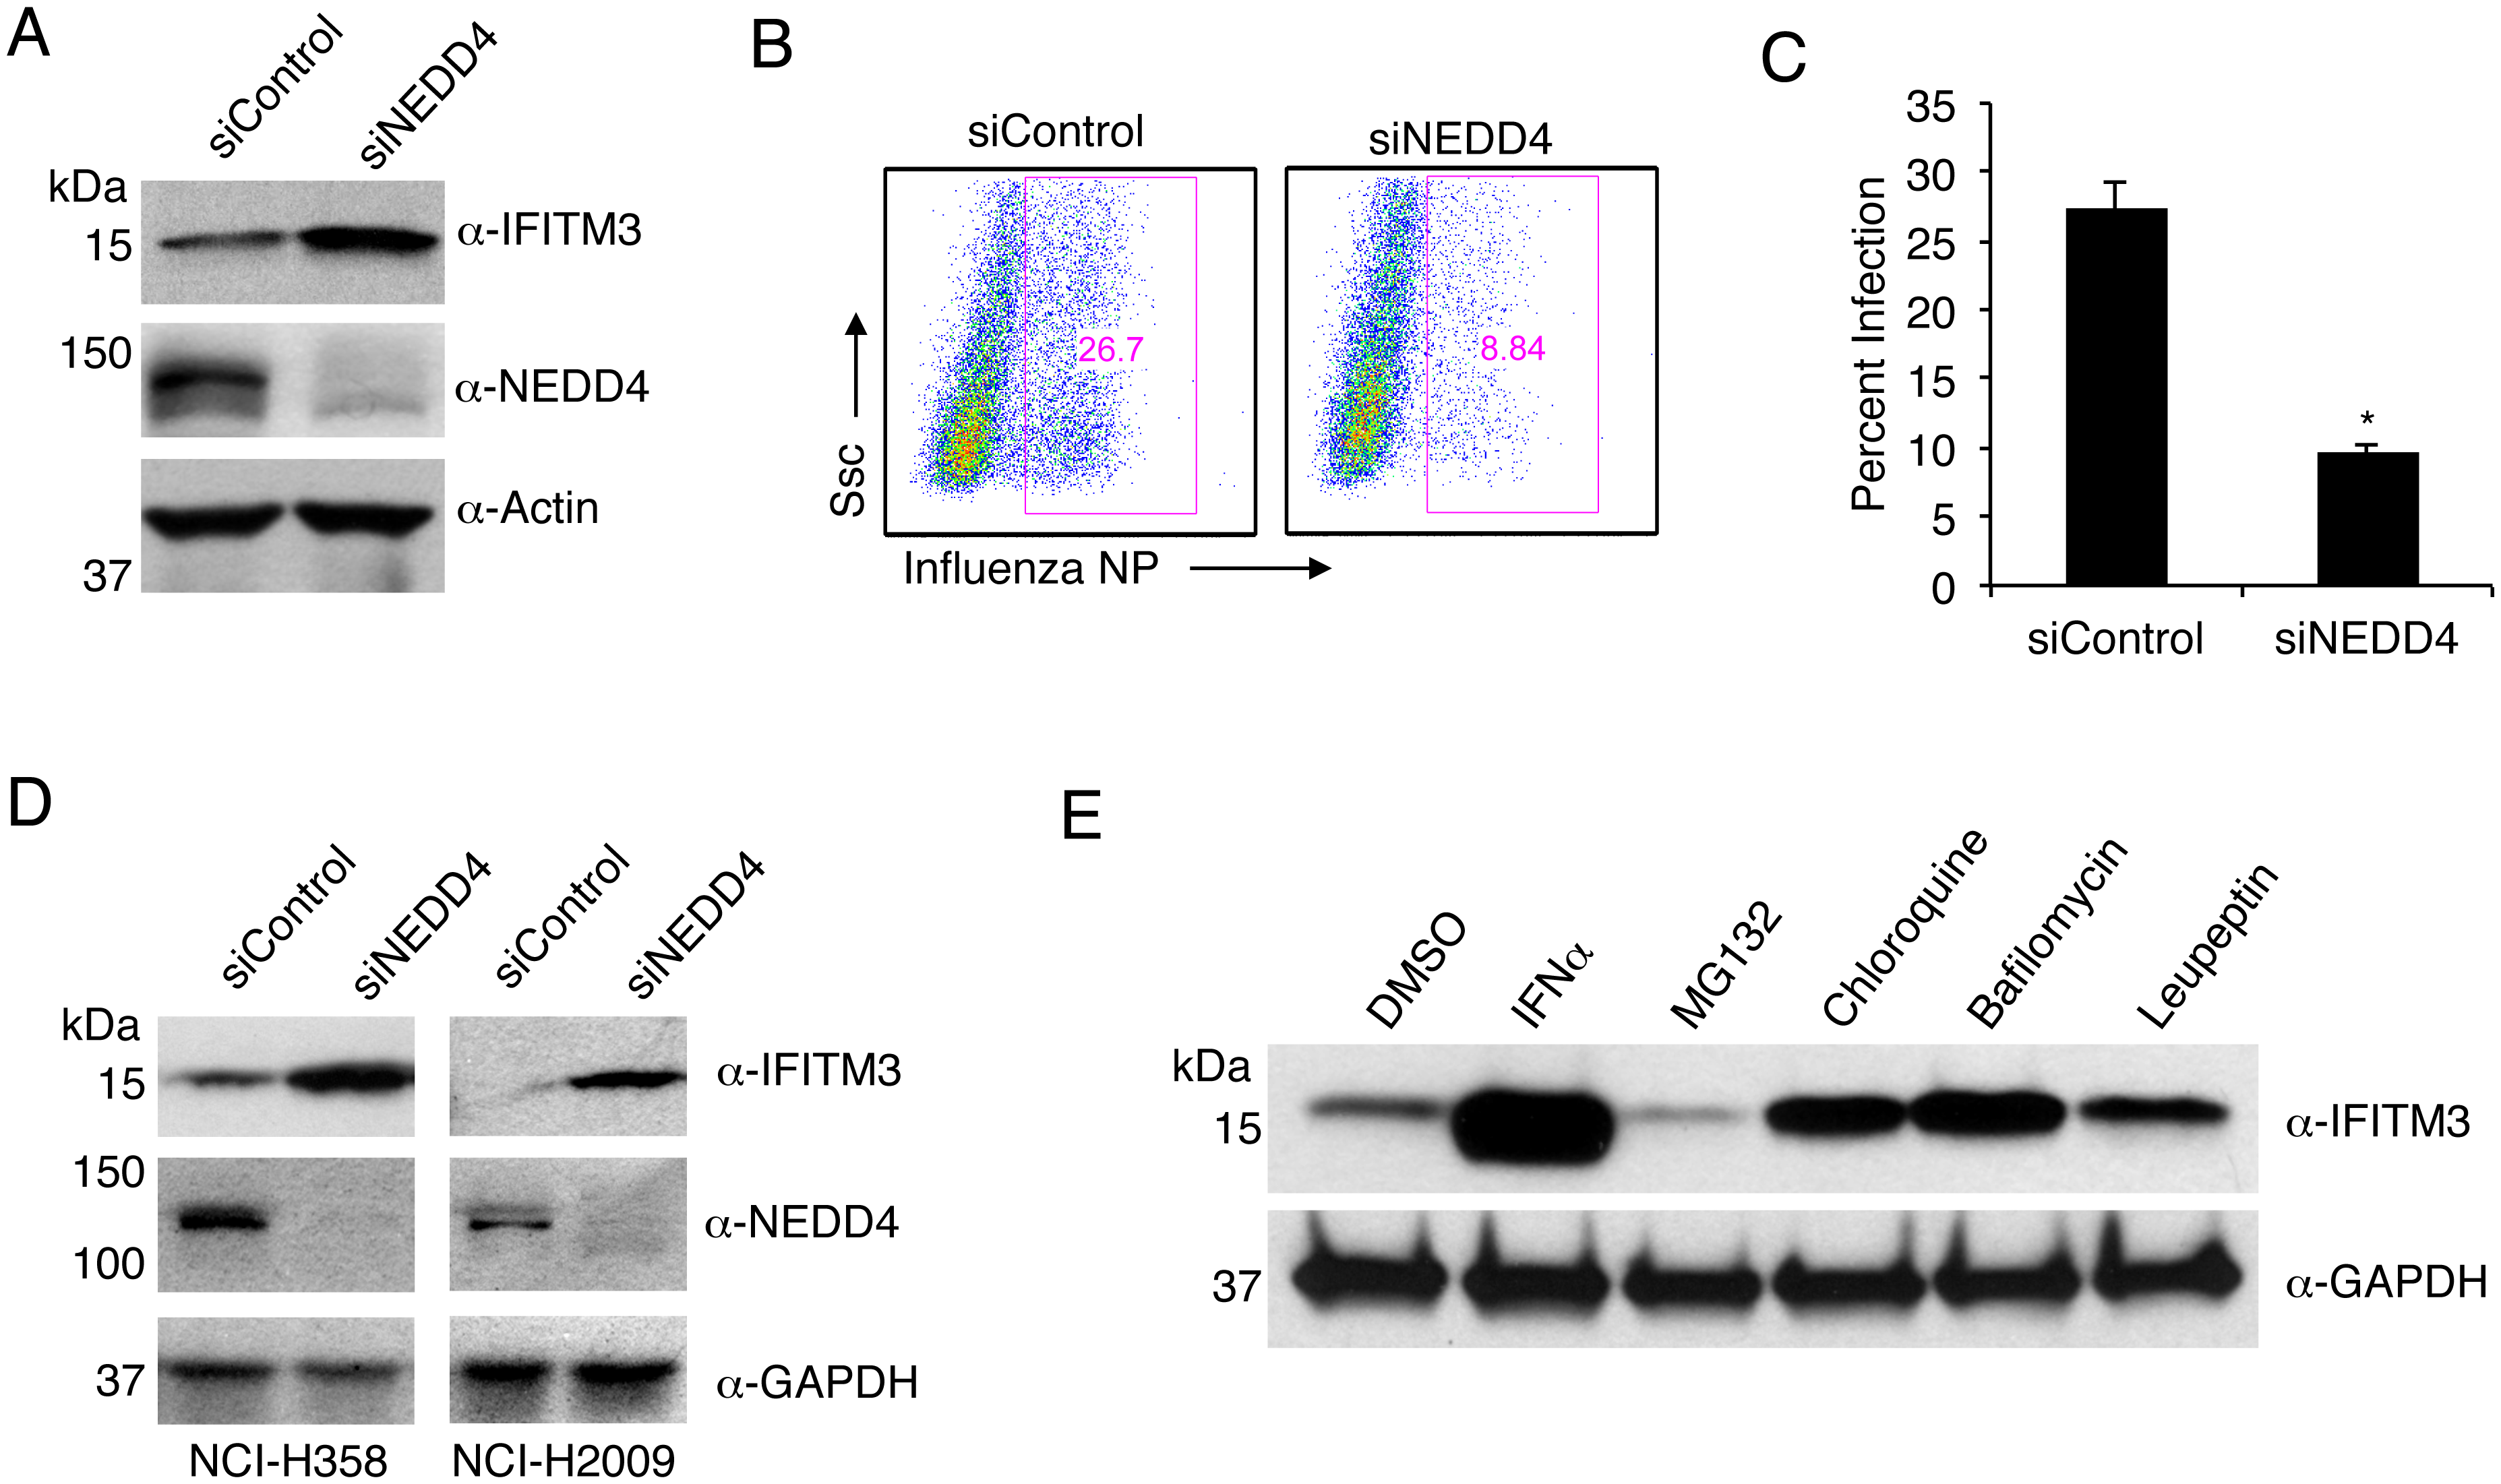 NEDD4 knockdown in human lung cells increases IFITM3 levels and resistance to influenza virus infection.